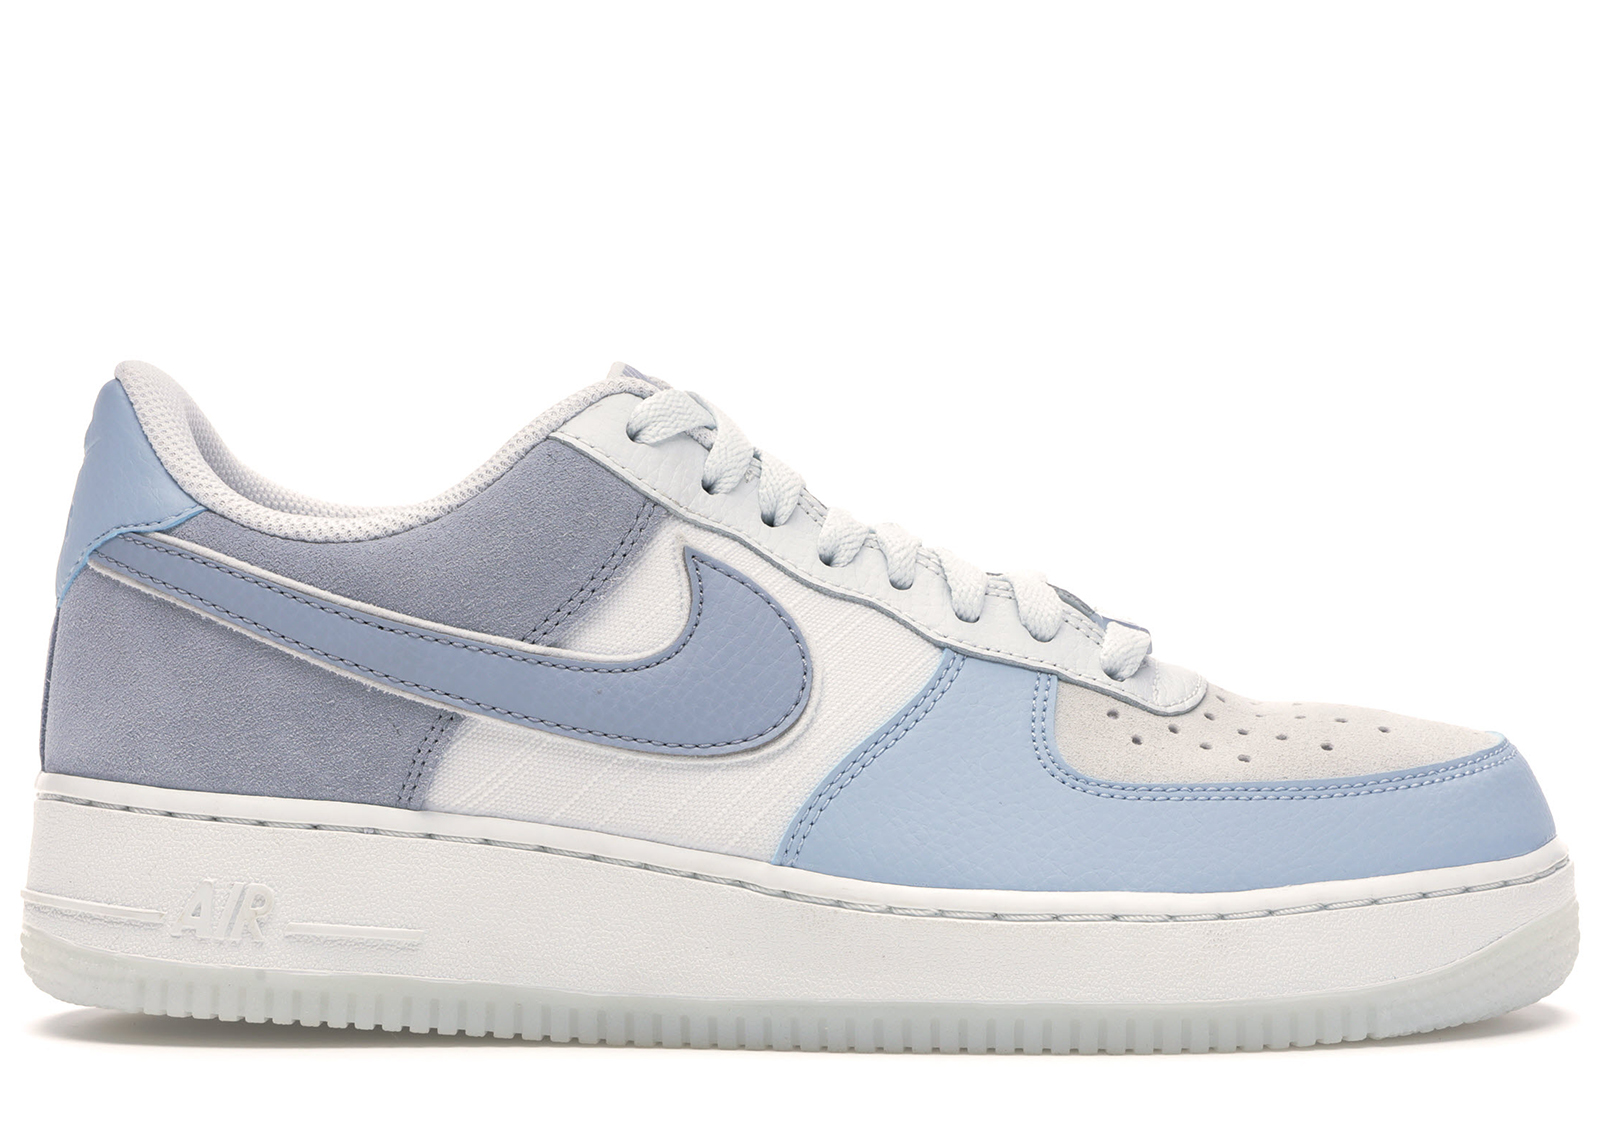 Nike Air Force 1 Low Light Armory Blue Obsidian Mist